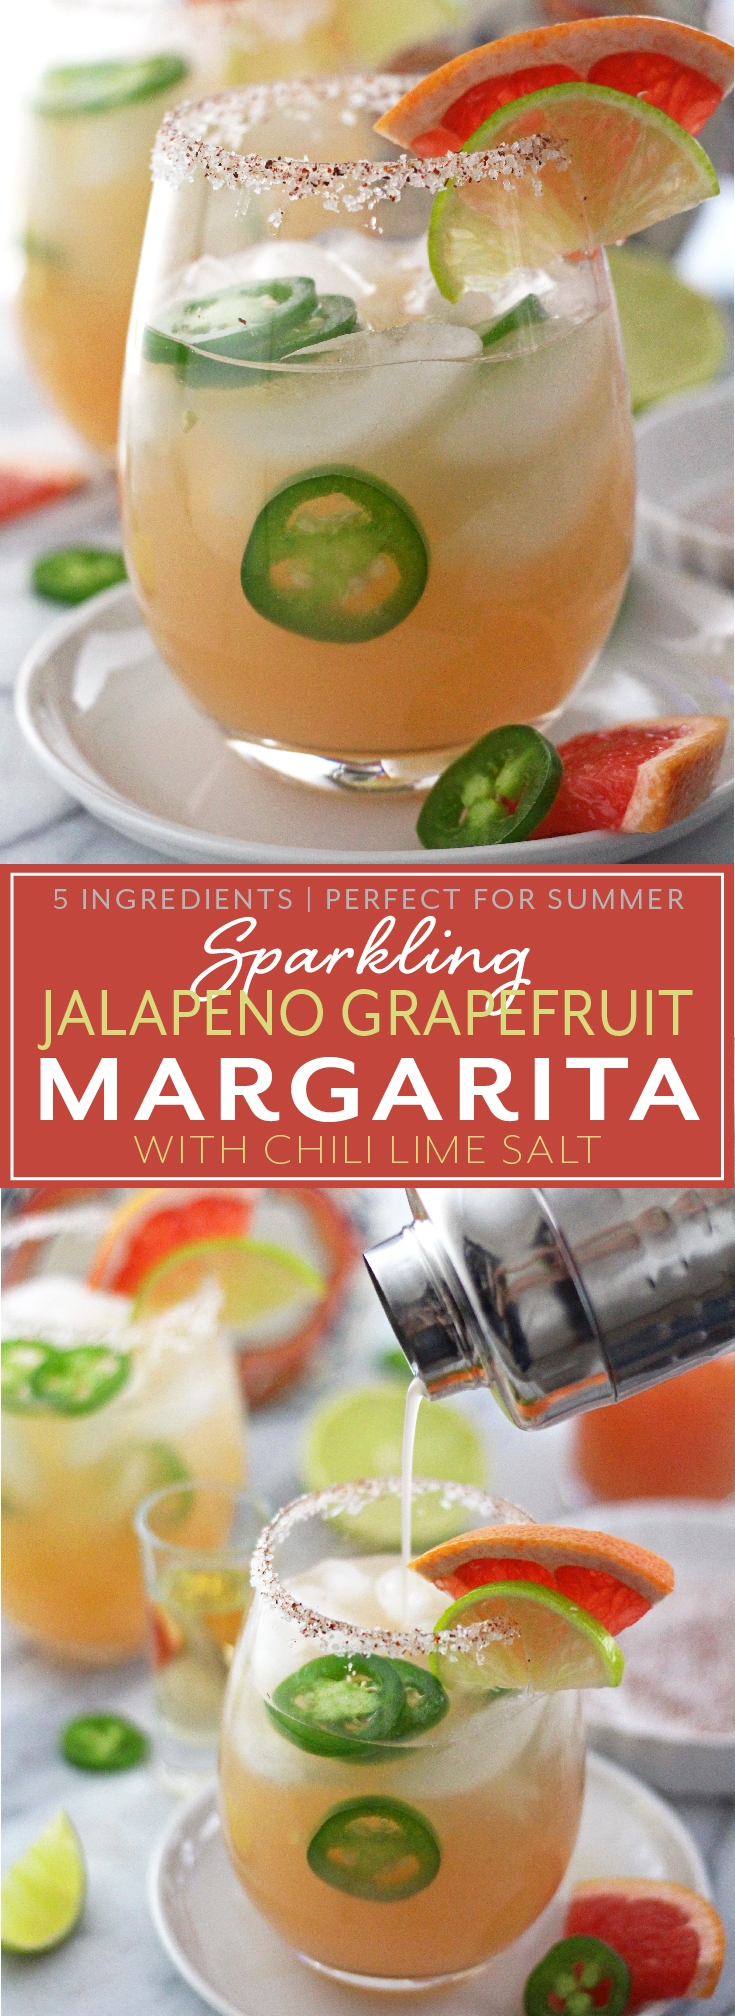 Not too sweet, not too spicy. This Jalapeño Grapefruit Margarita is made just right with only 5 ingredients and lots of tequila. Perfect for summer days!